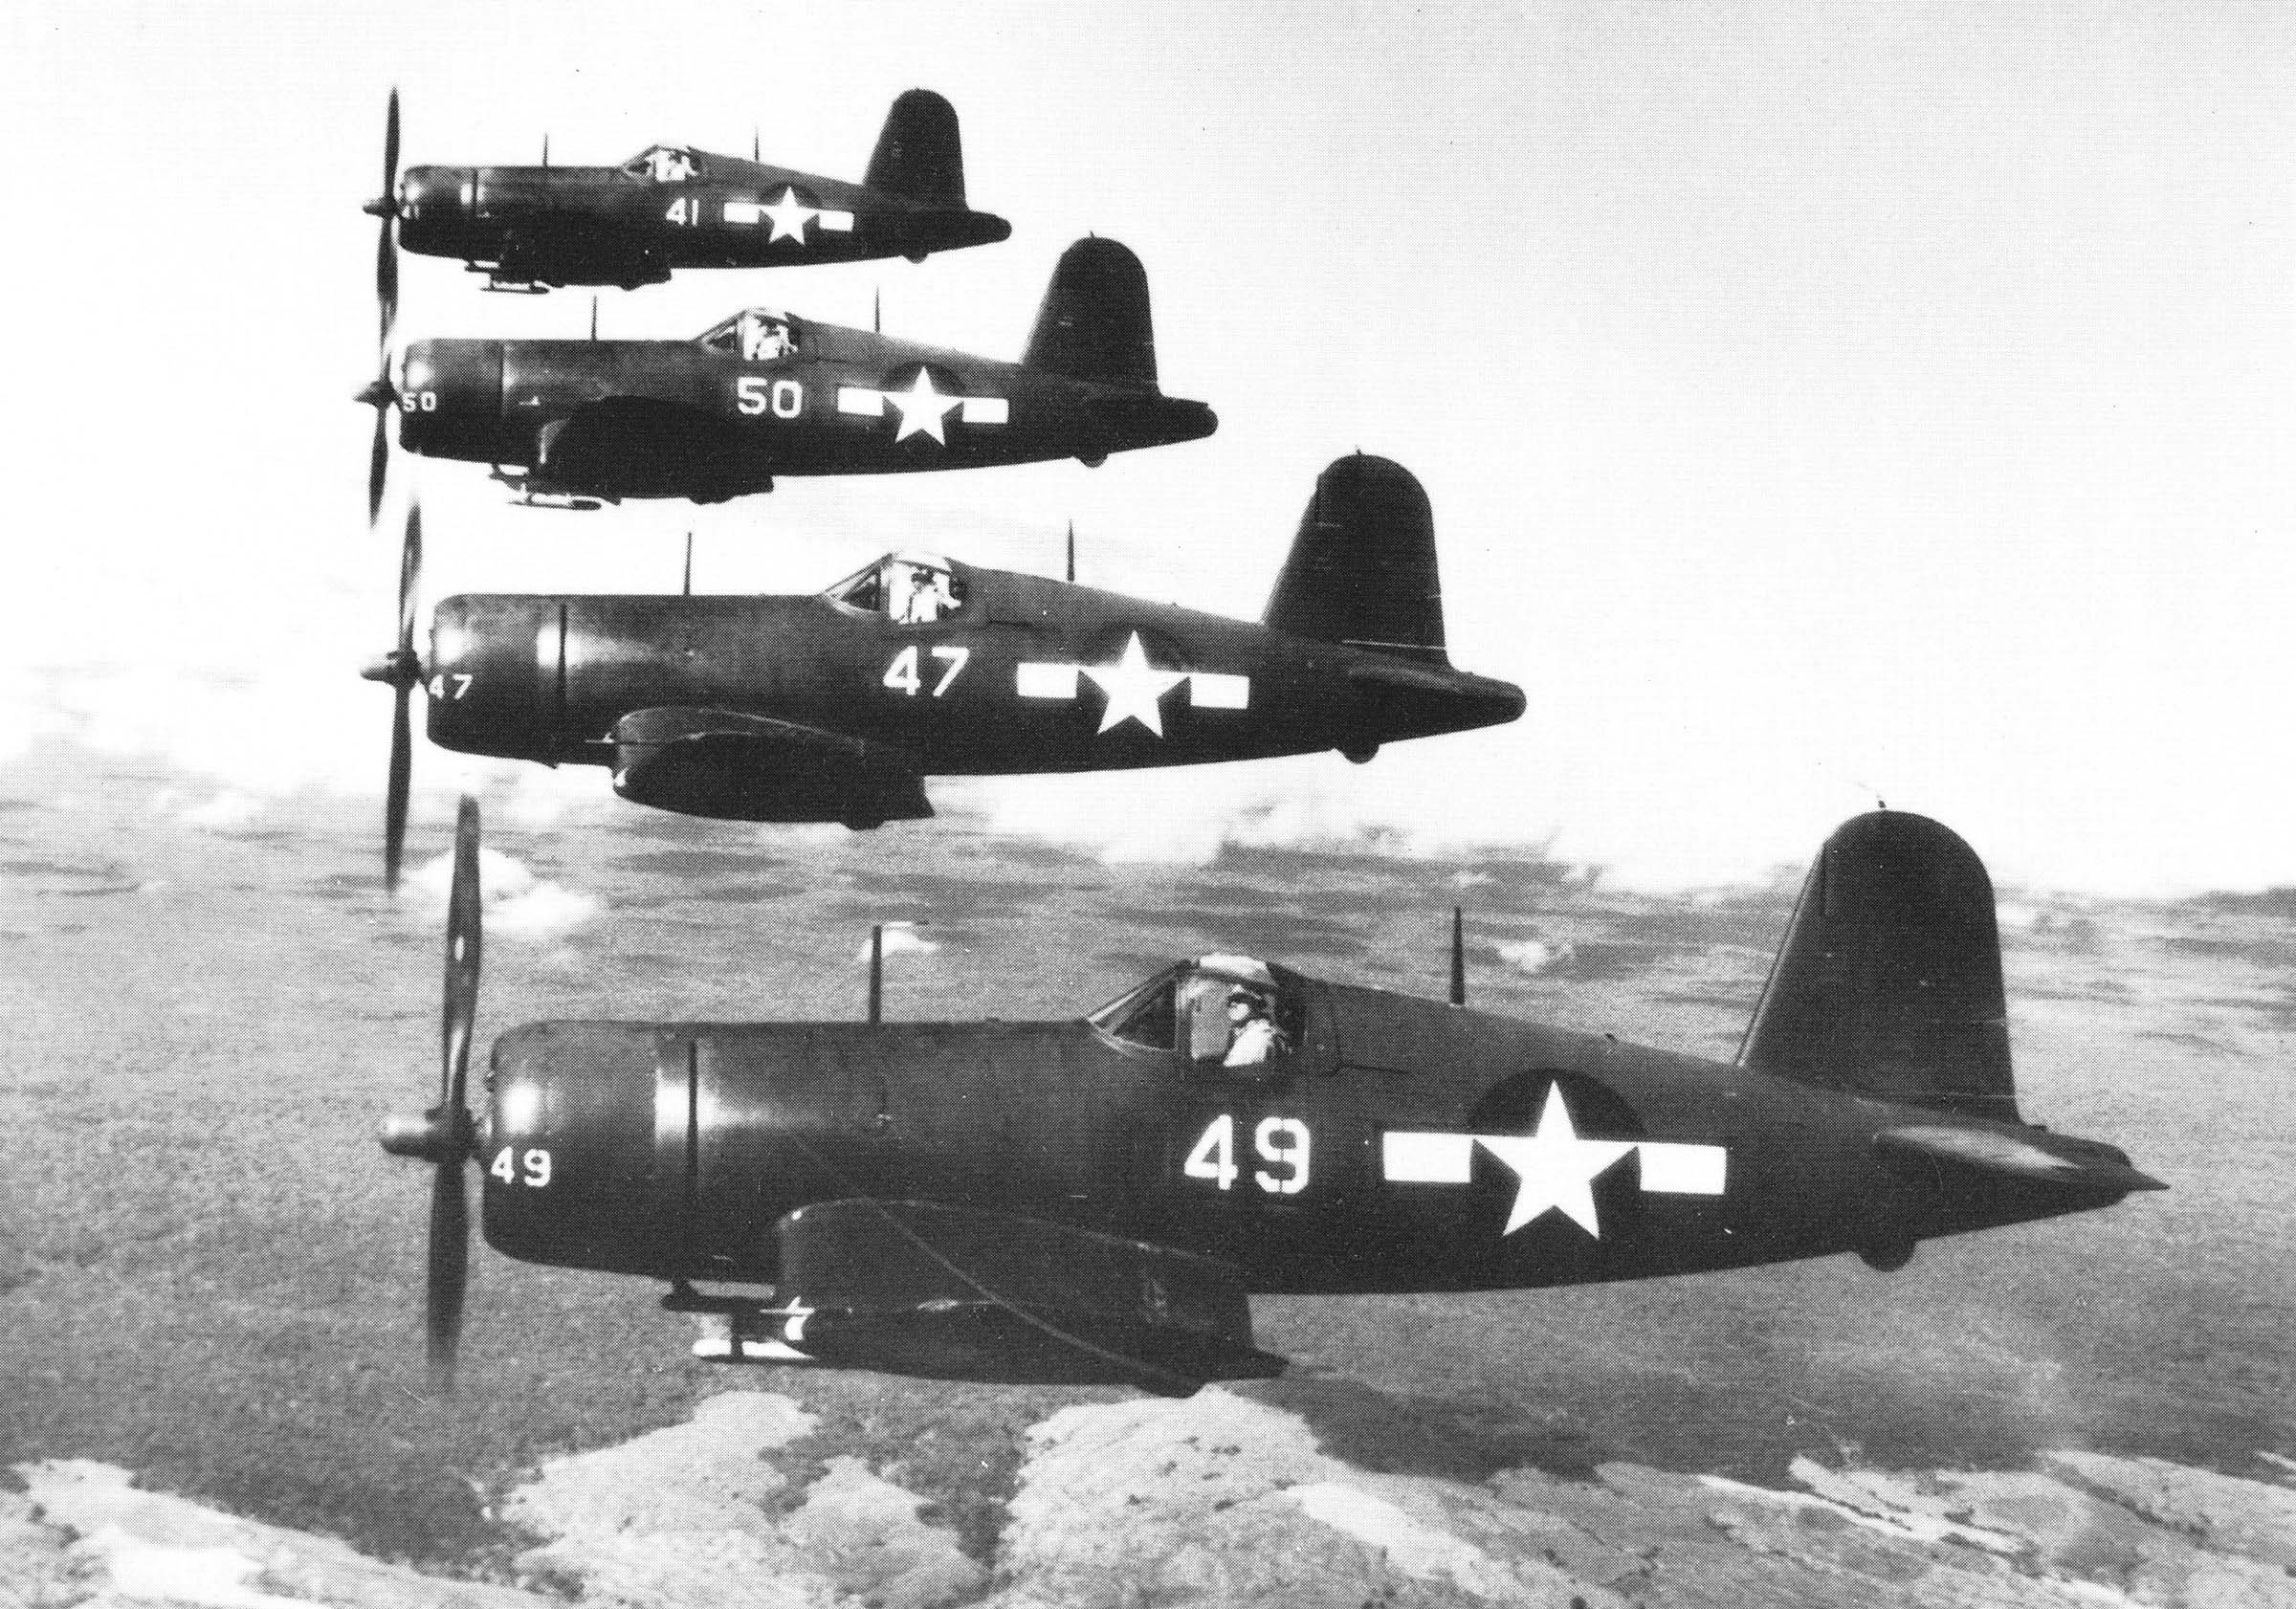 A four-ship line abreast formation of Chance-Vought F4U Corsairs over the Hawaiian Islands during WWII. [Photo Credit: National Archives]